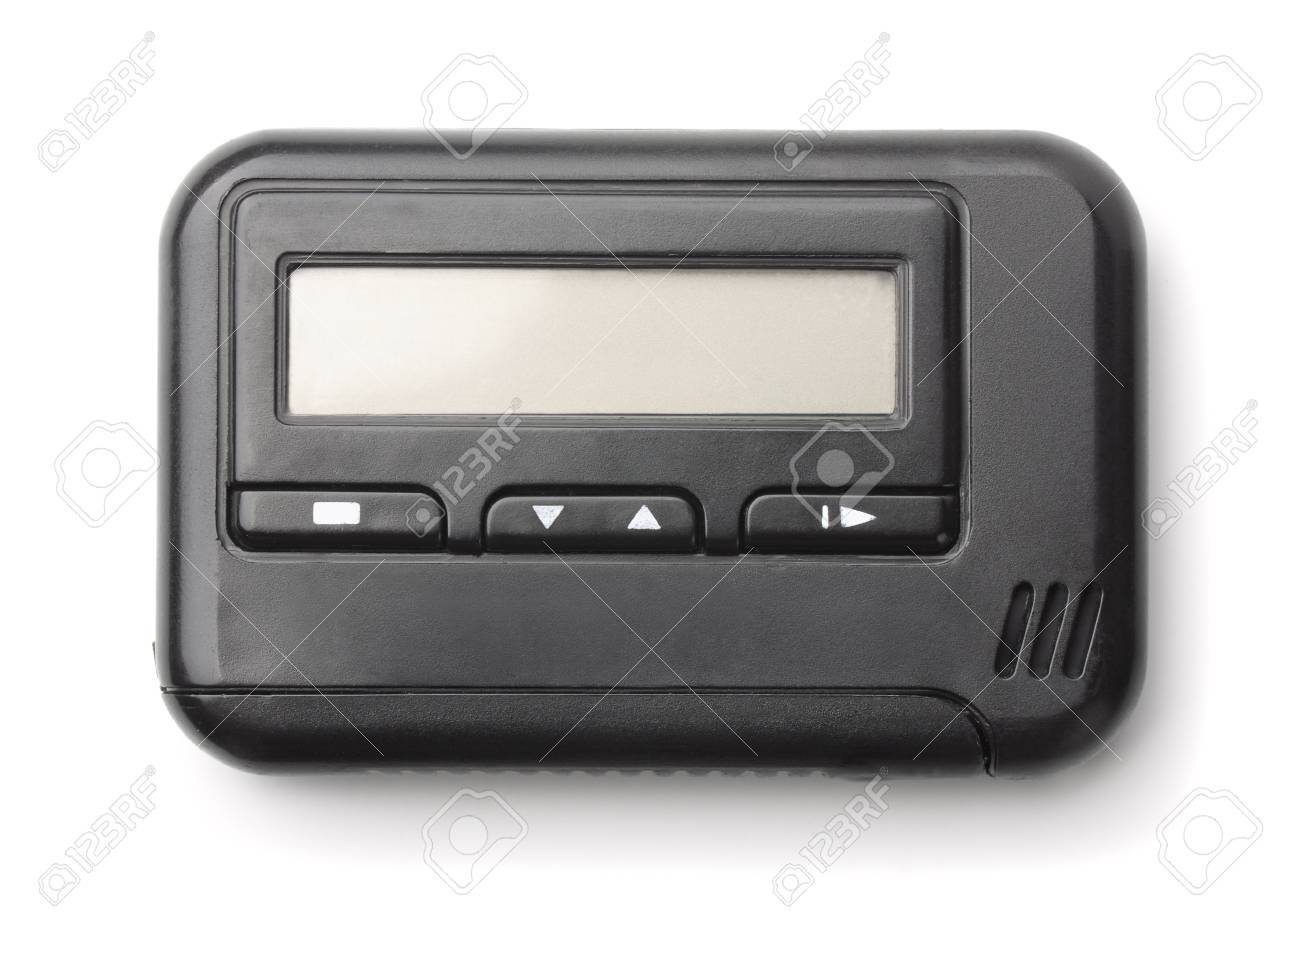 Old pager isolated on white - 57840489